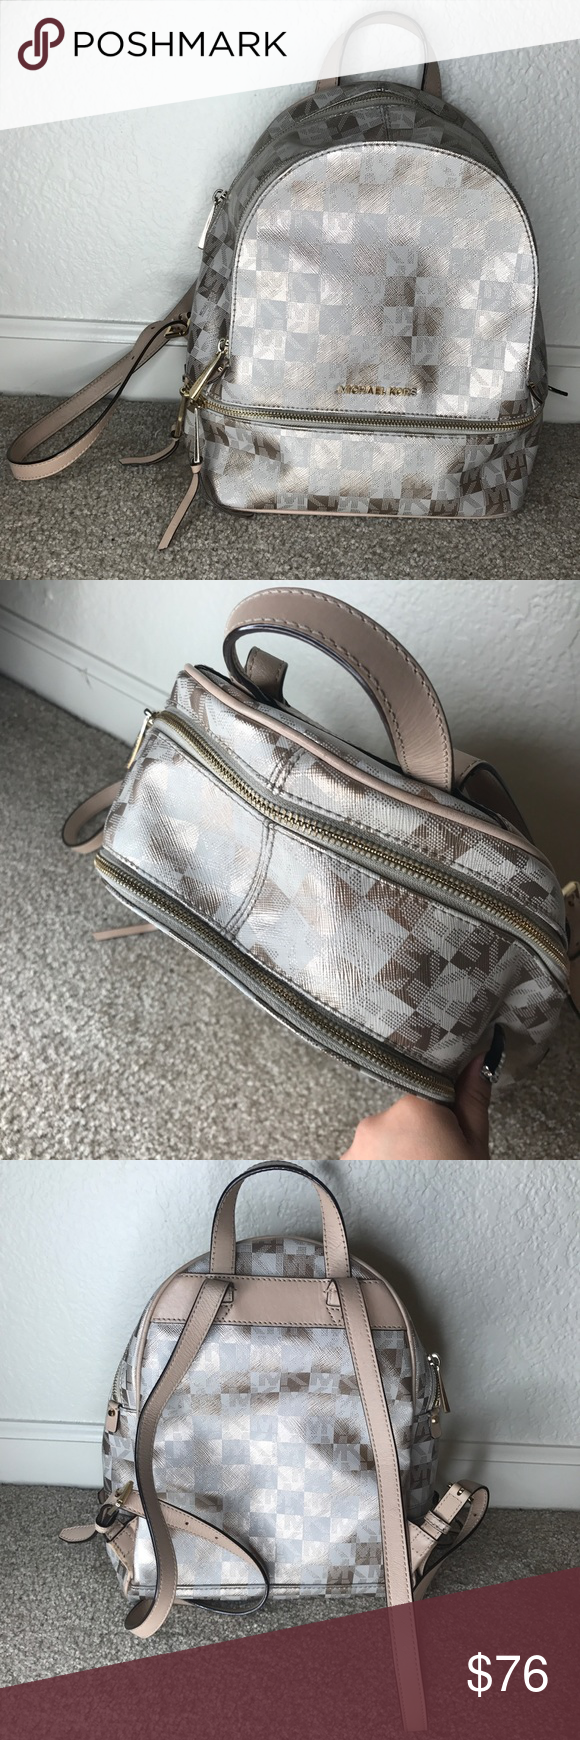 b62841ac88f1 AUTHENTIC MICHAEL KORS MEDIUM BACKPACK💗loved. Authentic Michael Kors  medium sized backpack purchased from